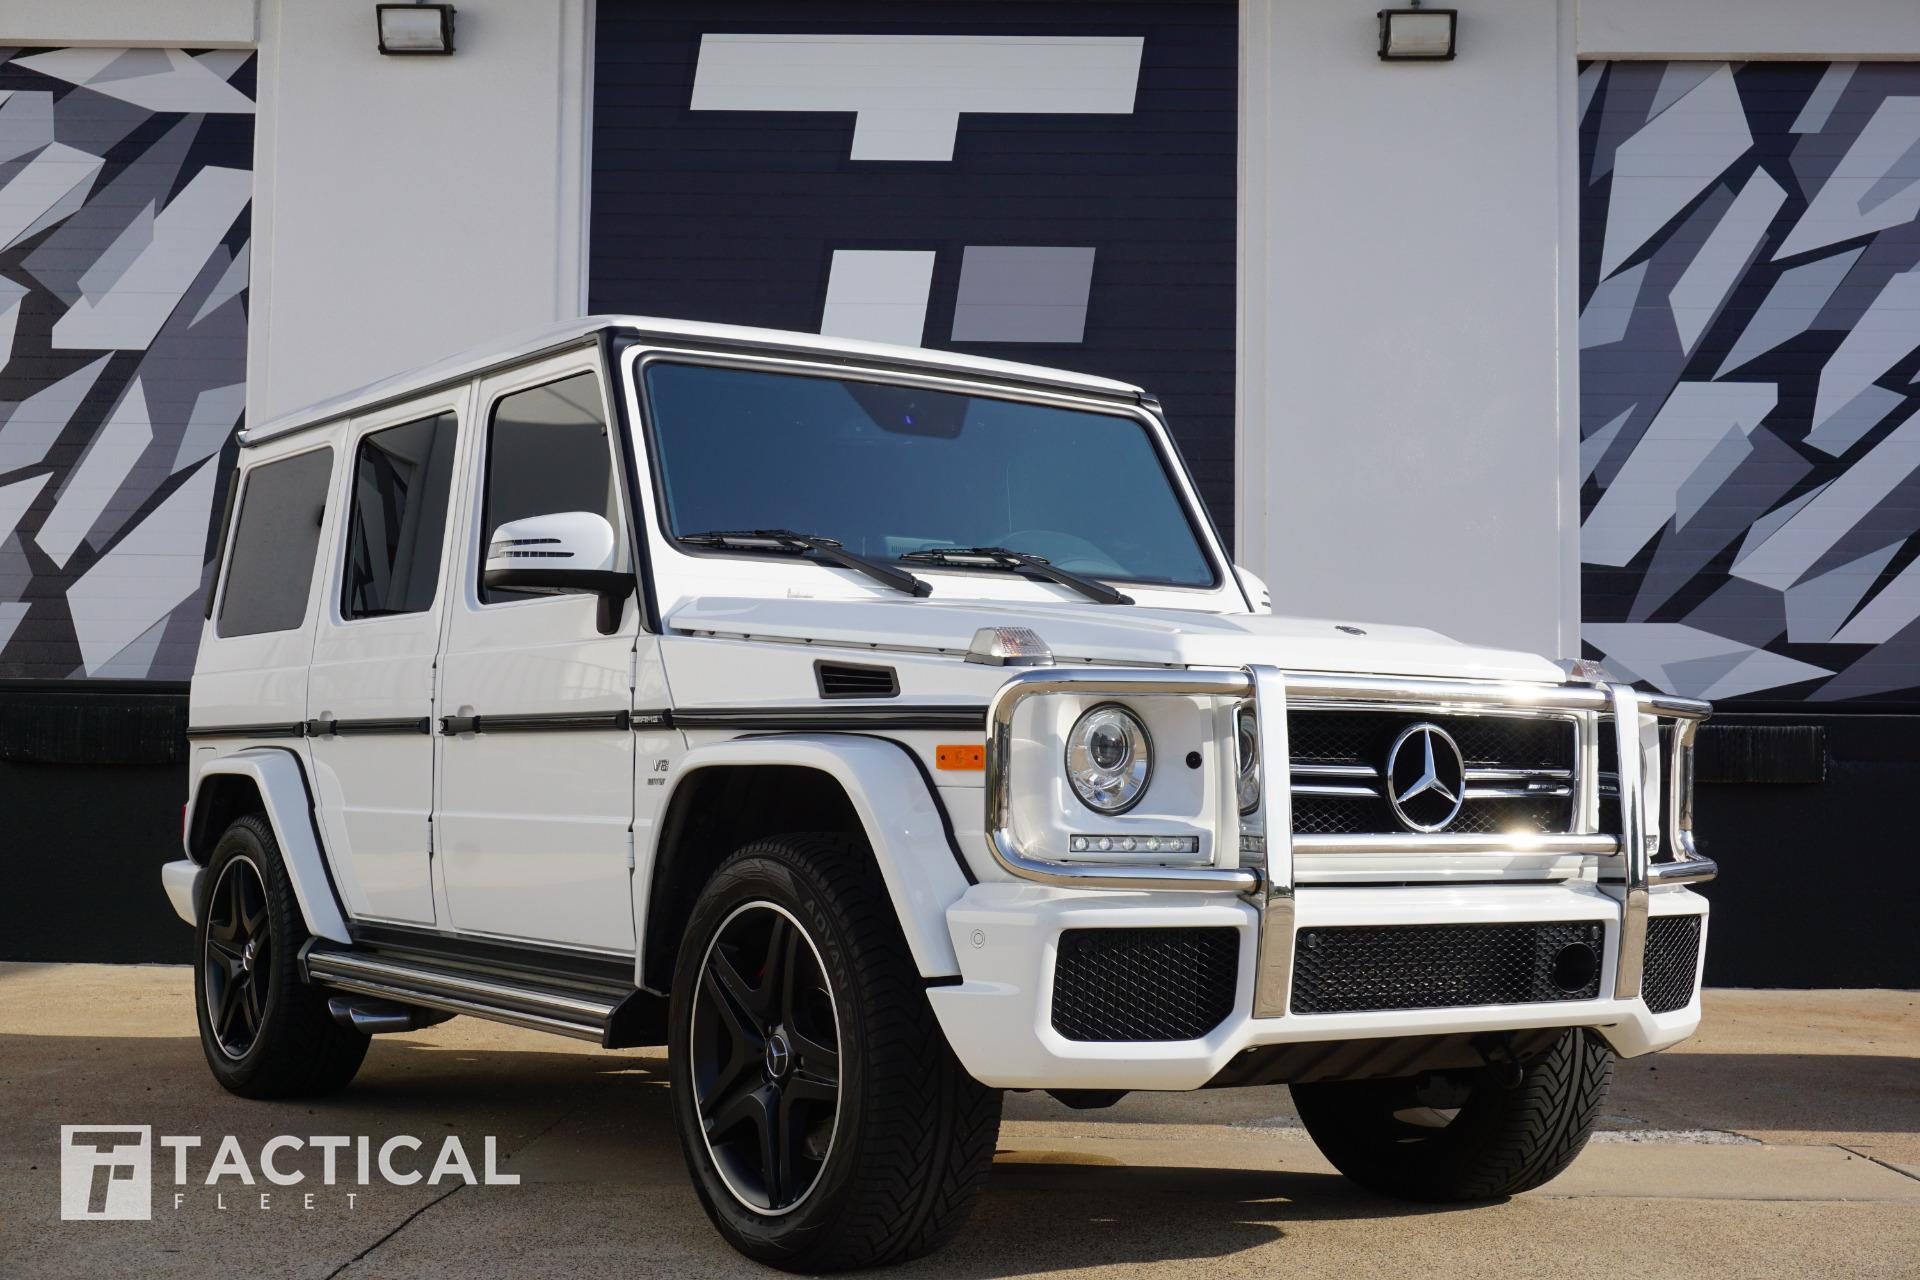 Used 2018 Mercedes Benz G Class Amg G 63 For Sale 129 900 Tactical Fleet Stock Tf1242